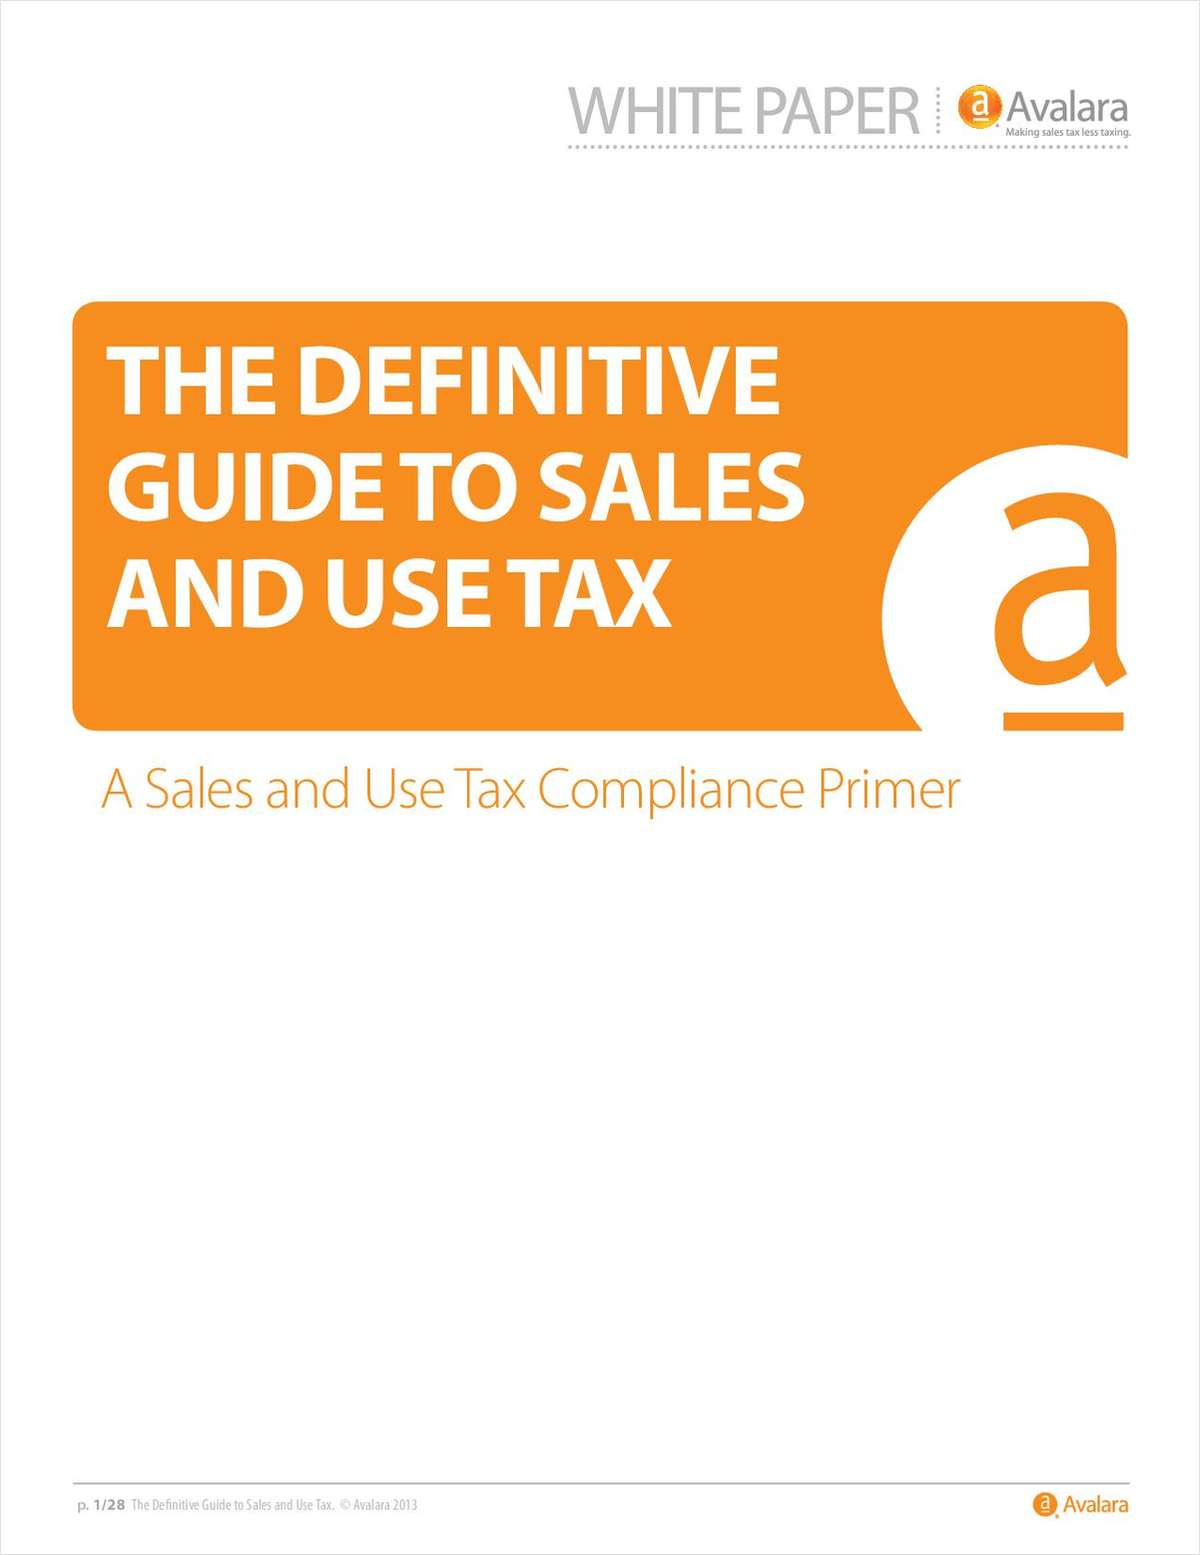 The Definitive Guide to Sales & Use Tax